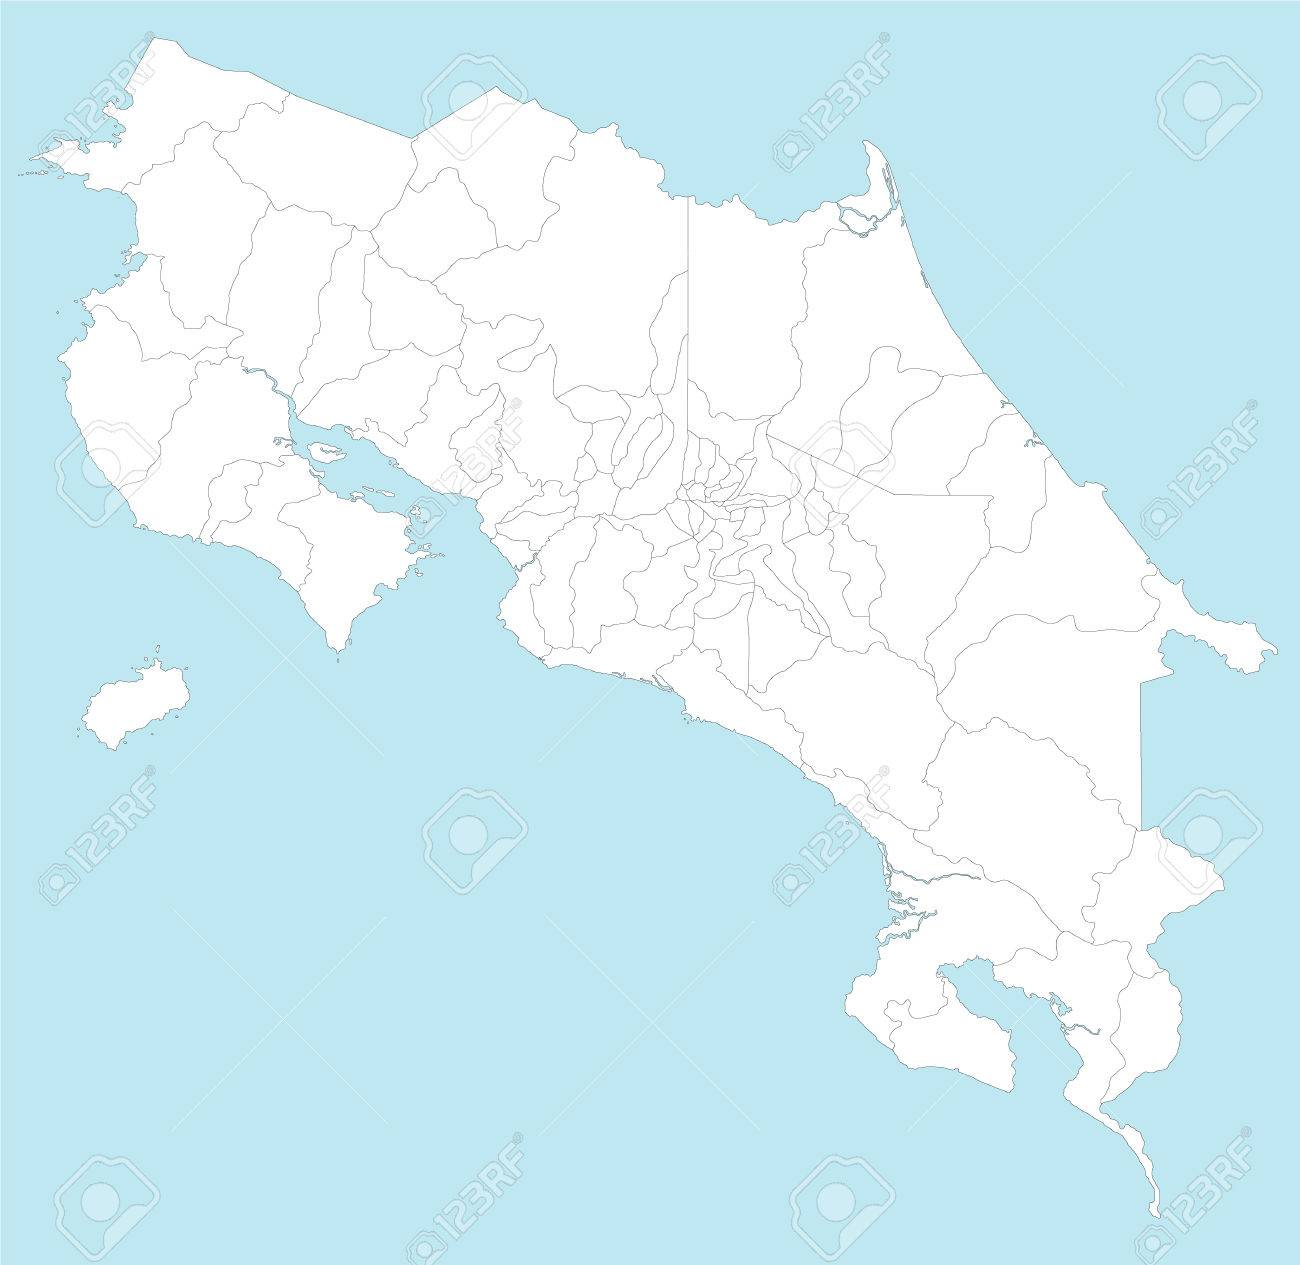 A large and detailed map of Costa Rica with all provincesa and..